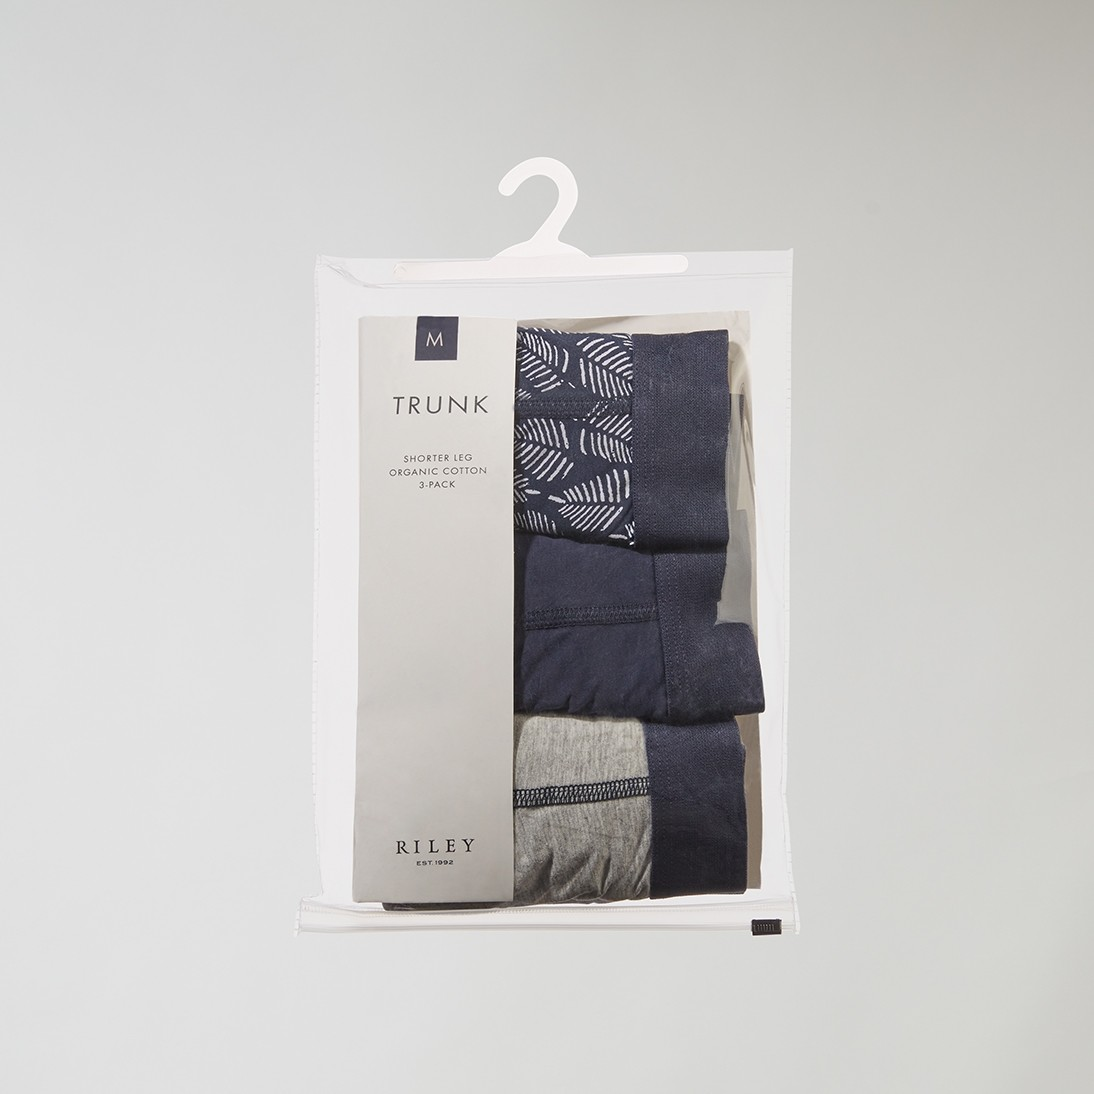 Kalsonger Multi 3-Pack 1 | Riley | Brothers.se